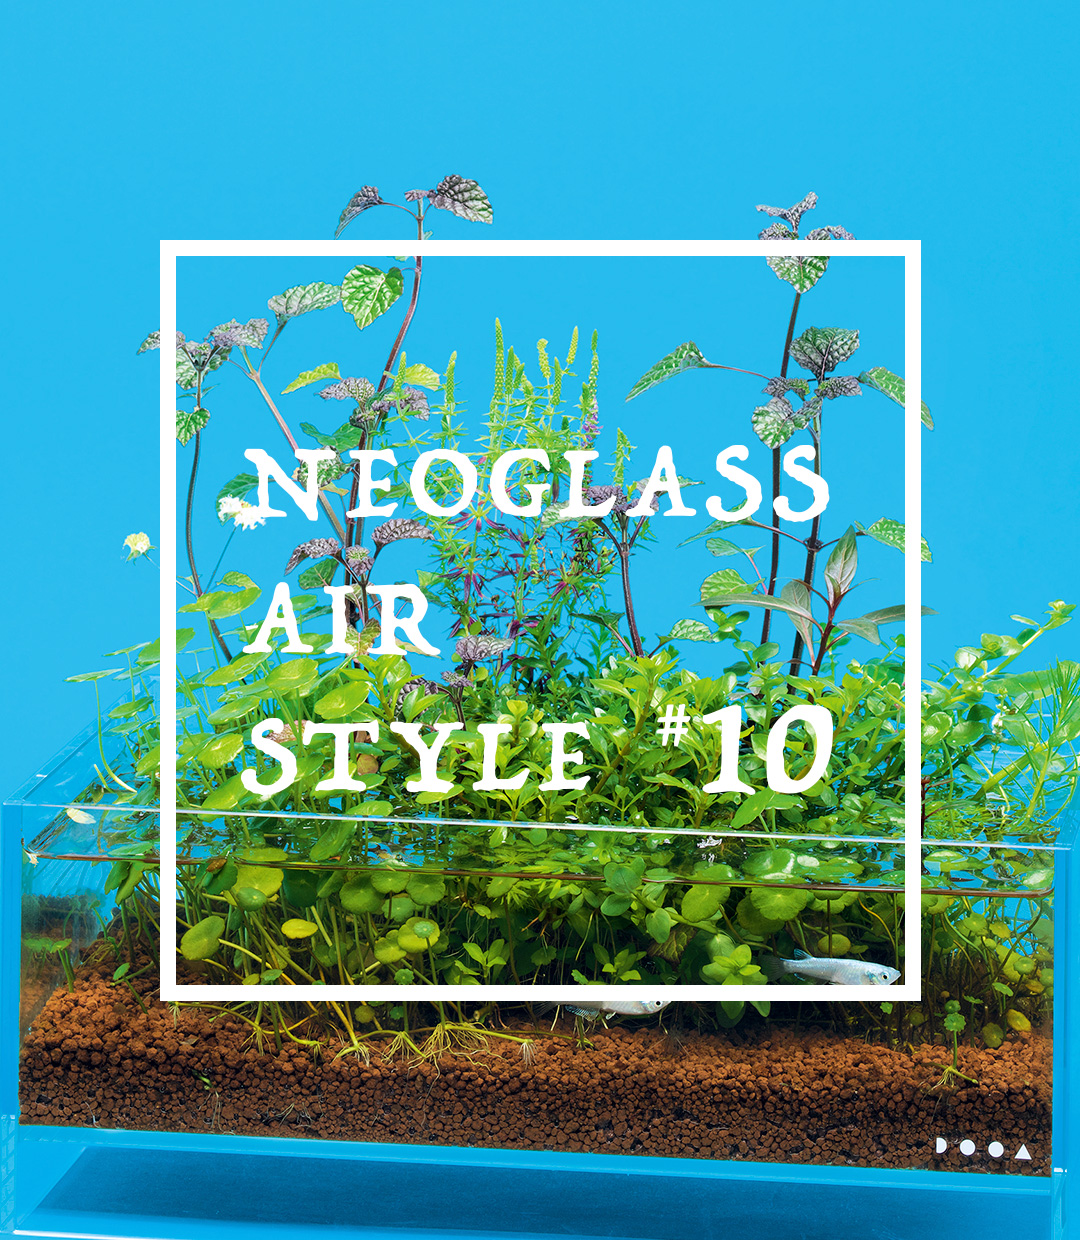 NEOGLASS AIR STYLE #10